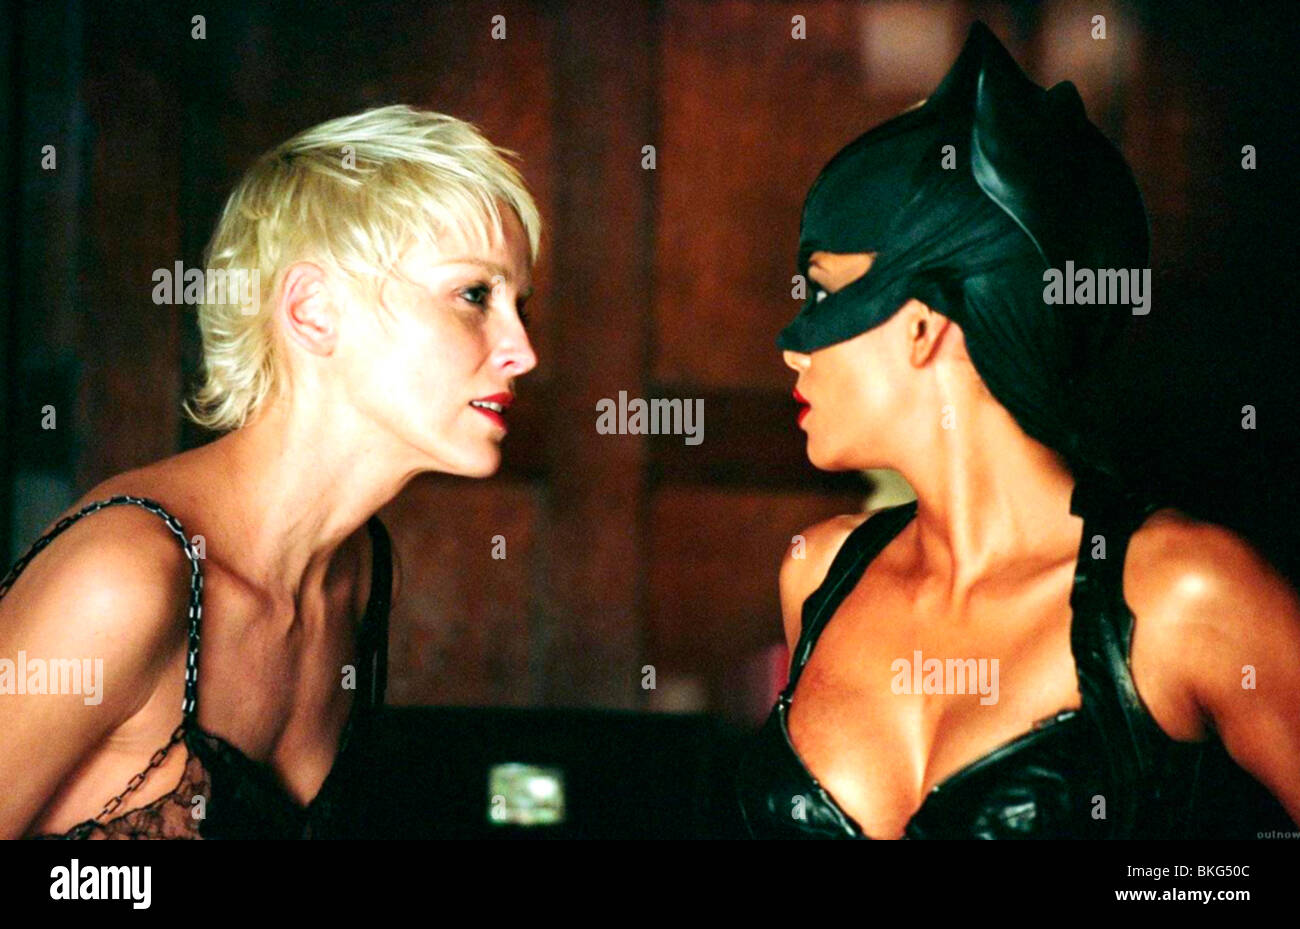 Catwoman 2004 Sharon Stone Halle Berry Cwmn 002 007 Stock